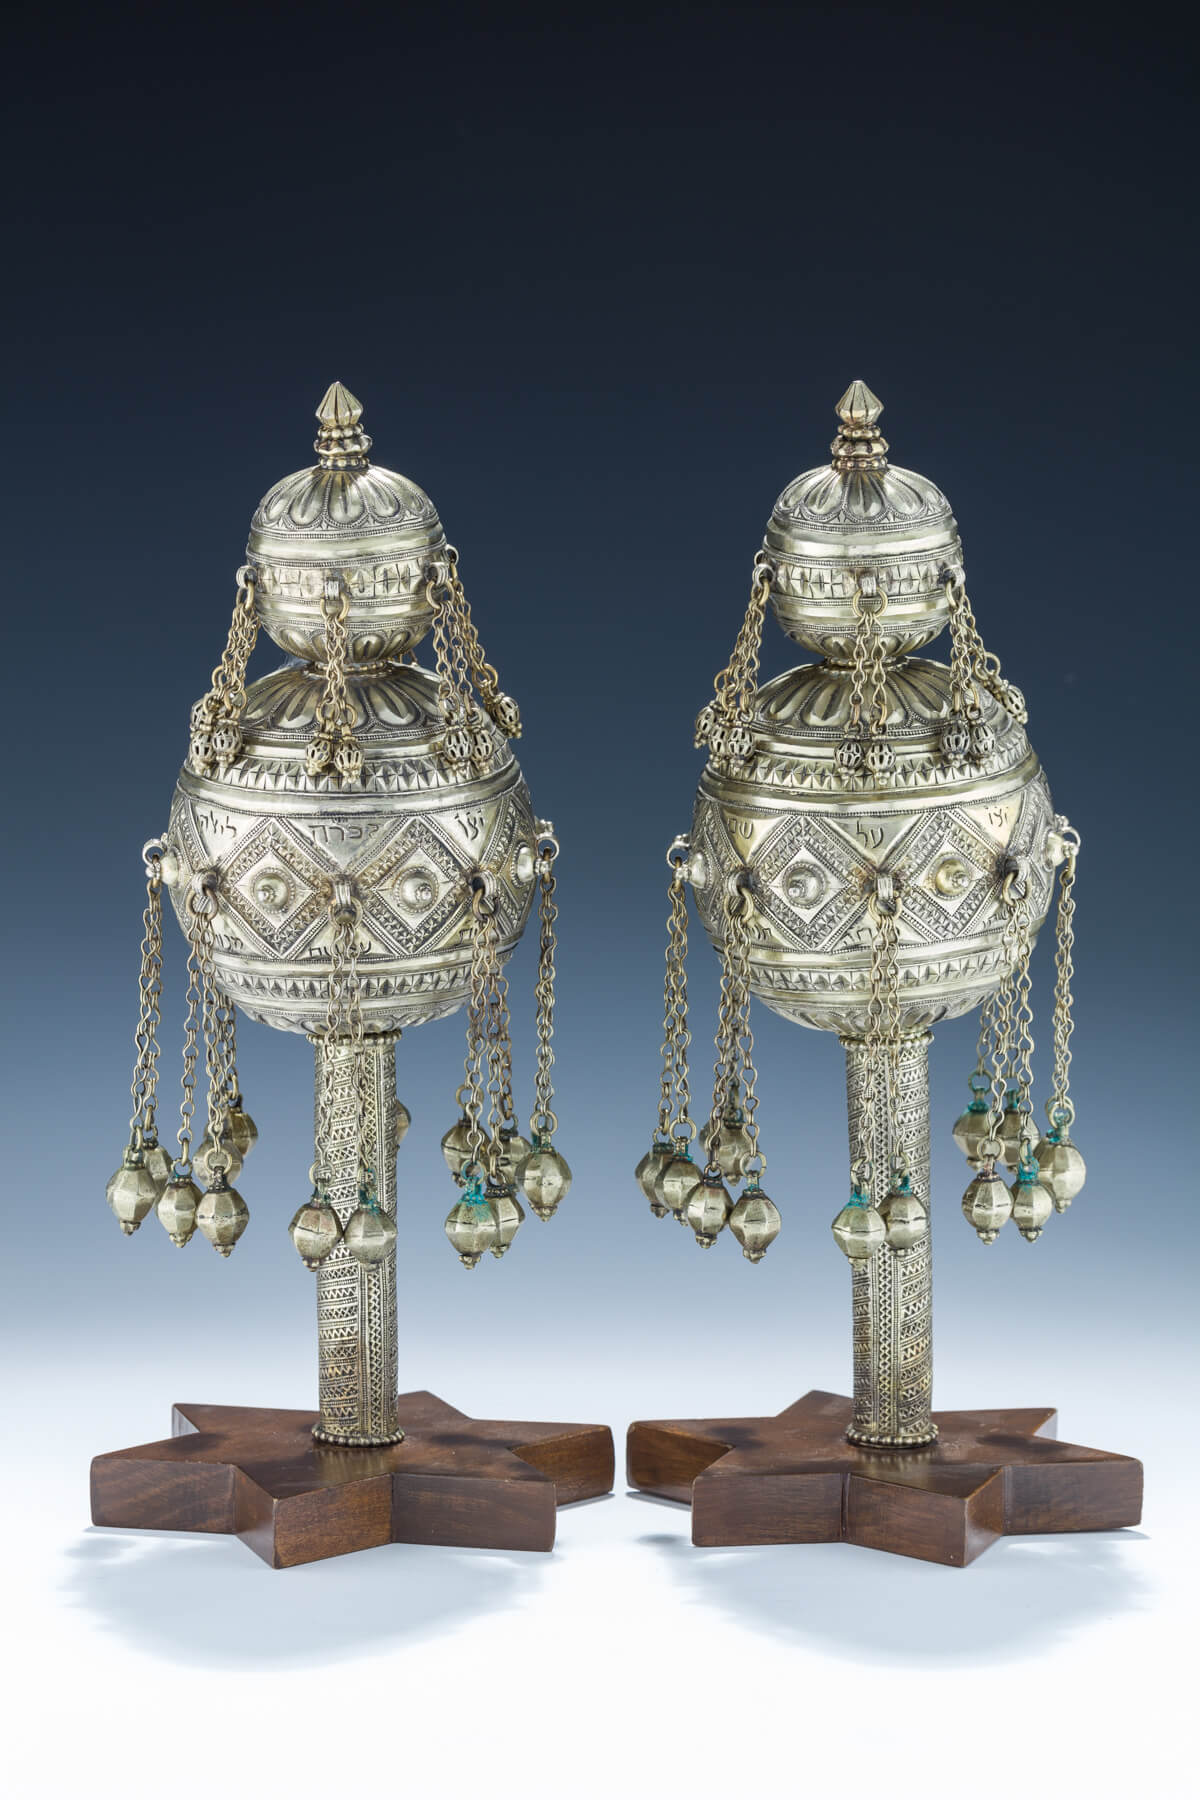 123. A Pair of Parcel Gilt Torah Finials